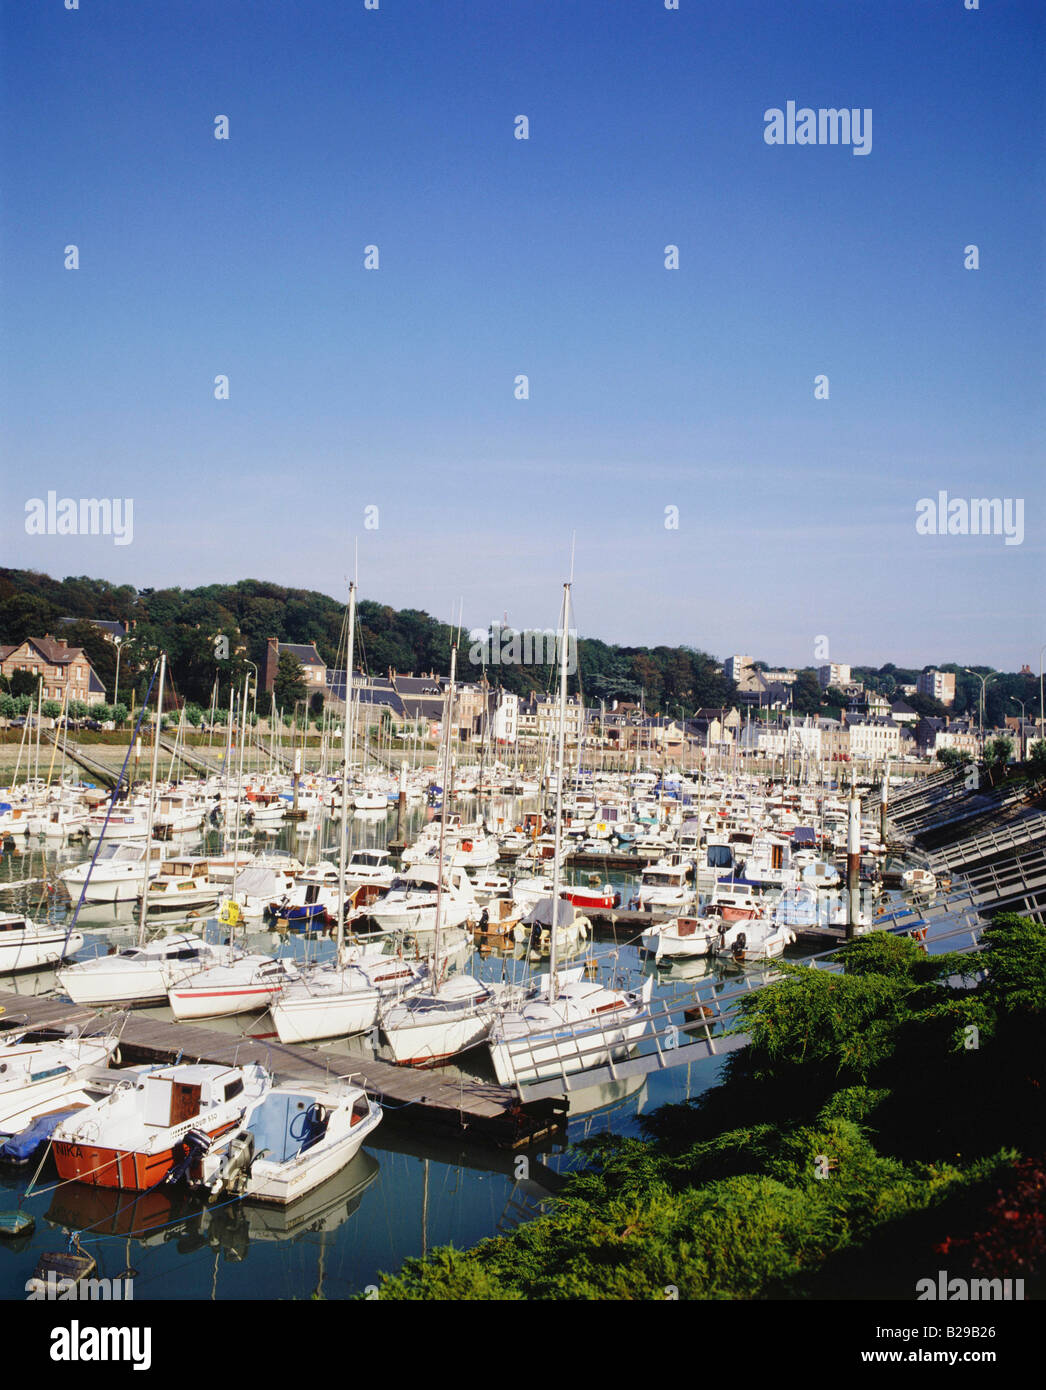 FRANCE Normandy St Valery En Caux Date 10 06 2008 Ref ZB616 114871 0007 COMPULSORY CREDIT World Pictures Photoshot - Stock Image